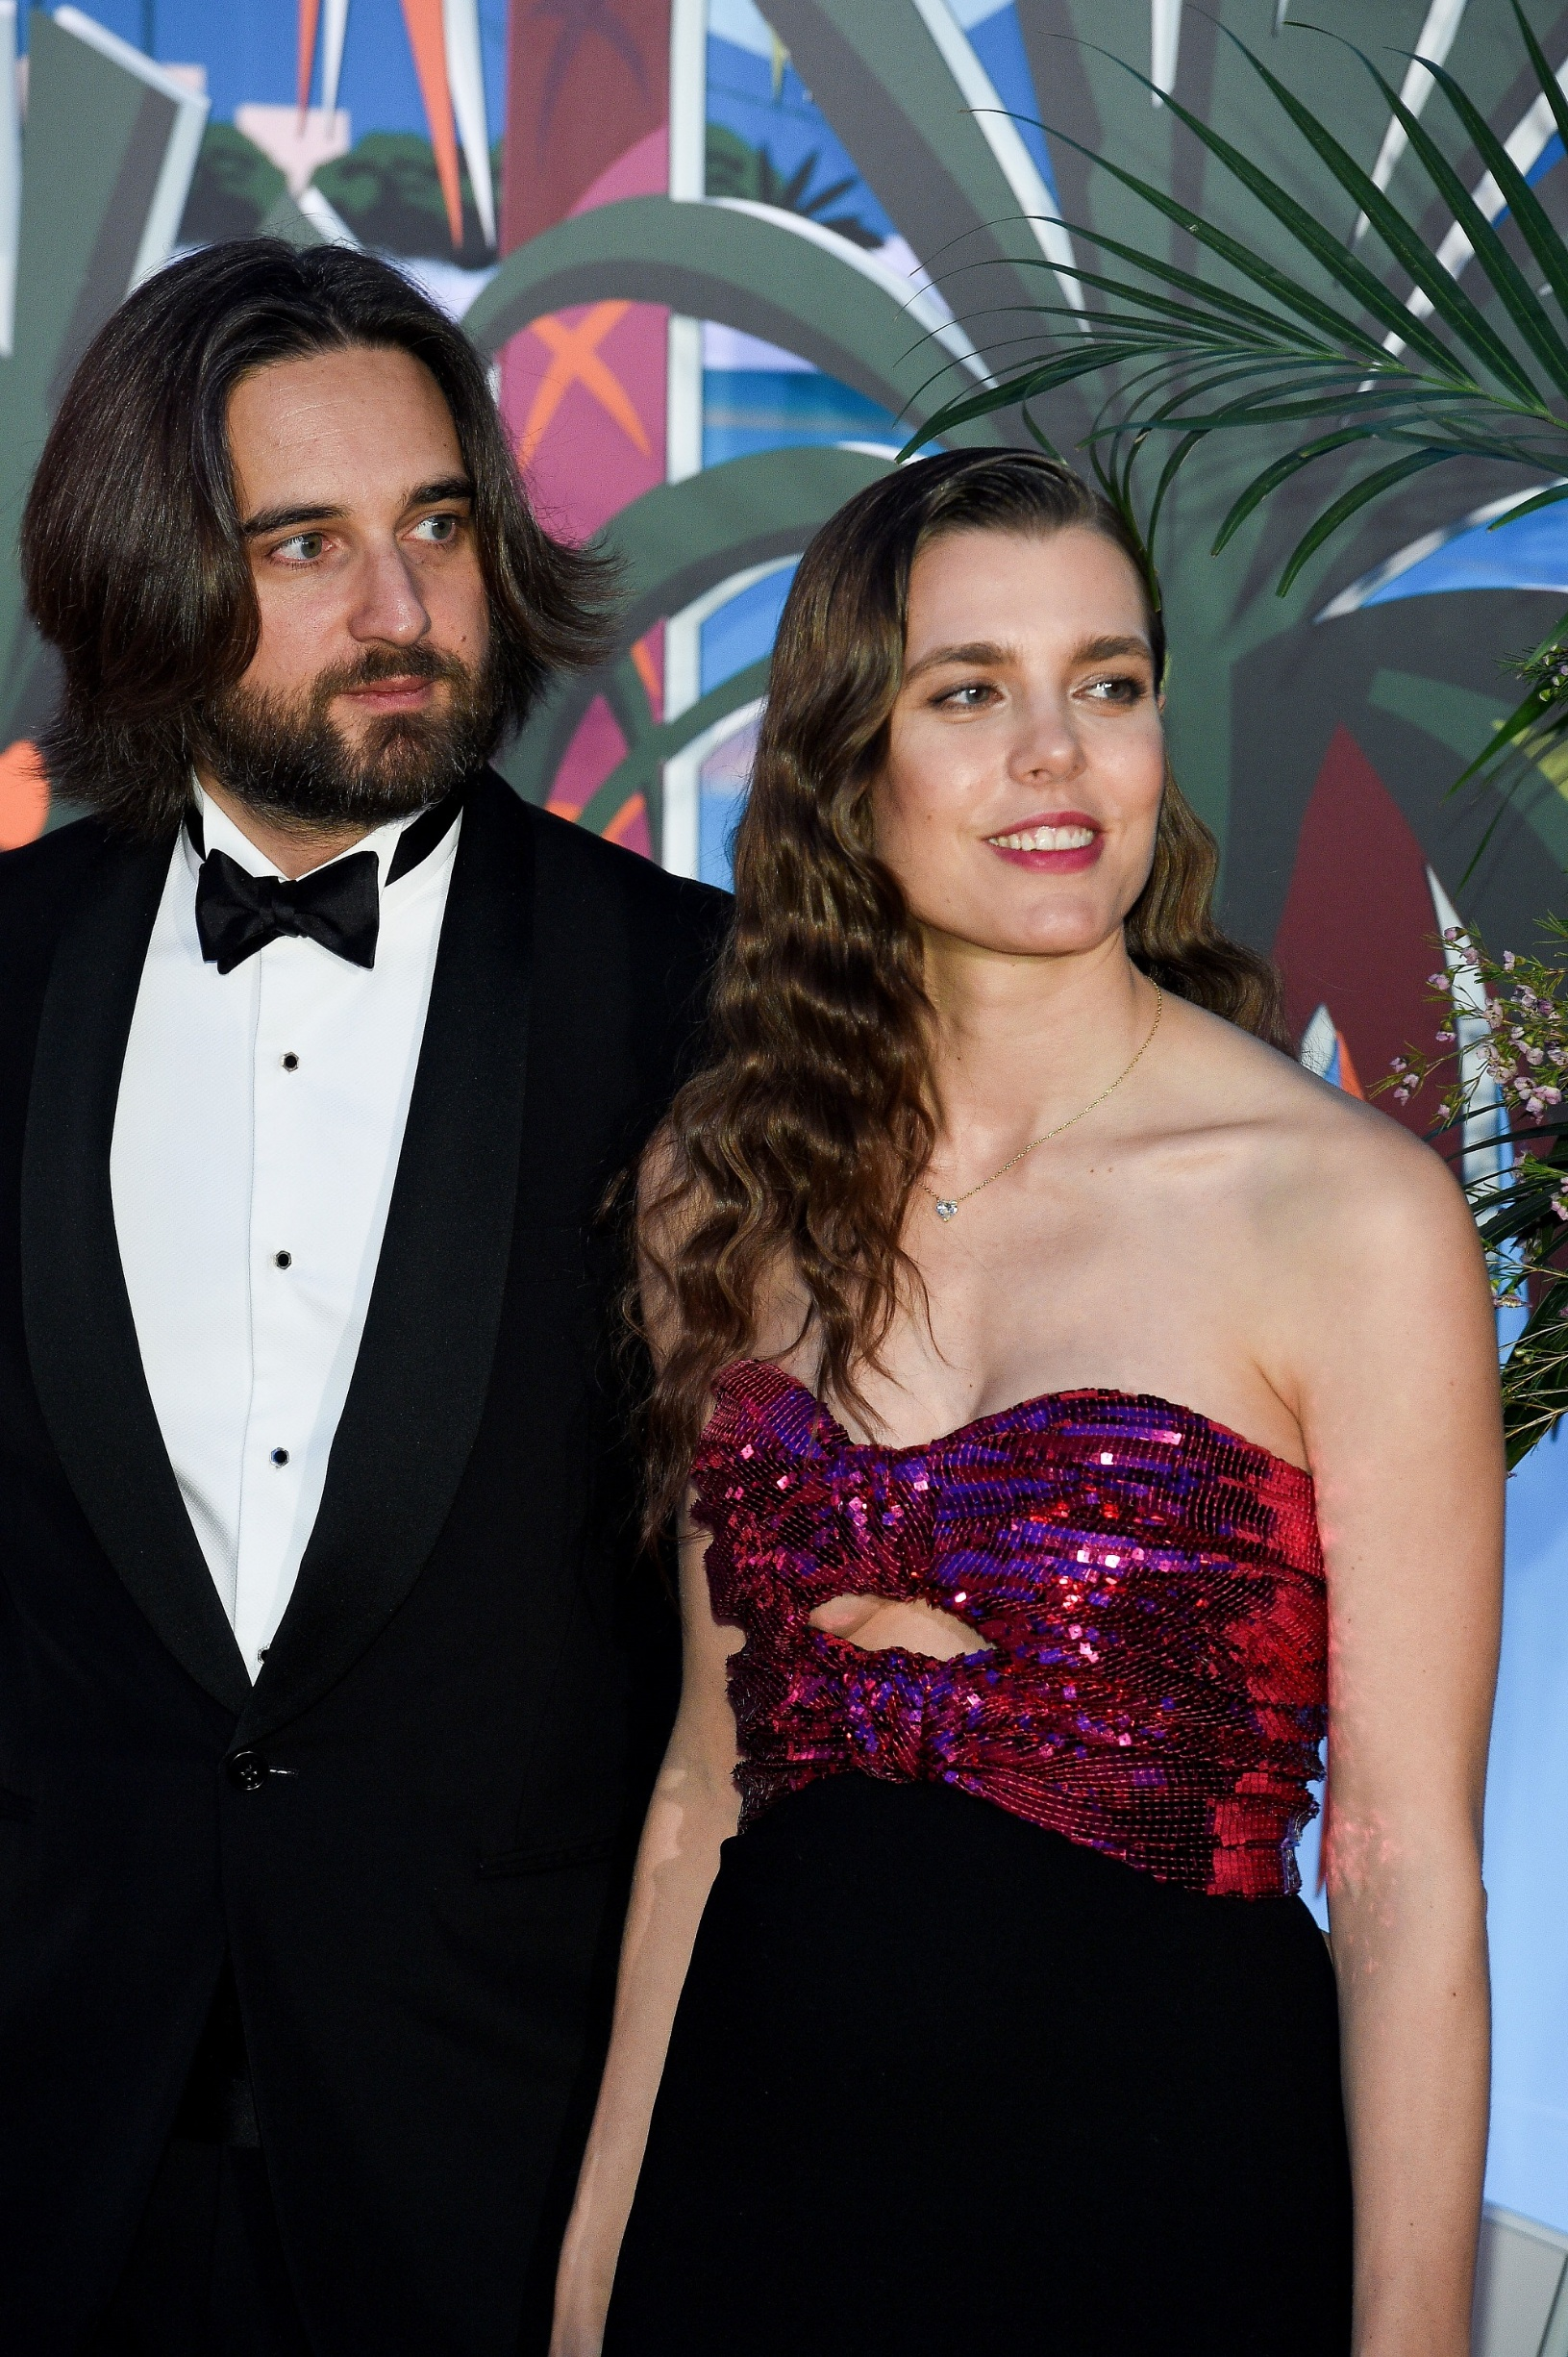 MONACO, MONACO - MARCH 30: (L-R) Dimitri Rassam and Charlotte Casiraghi attend the Rose Ball 2019 to benefit the Princess Grace Foundation on March 30, 2019 in Monaco, Monaco. (Photo by PLS Pool/Getty Images)